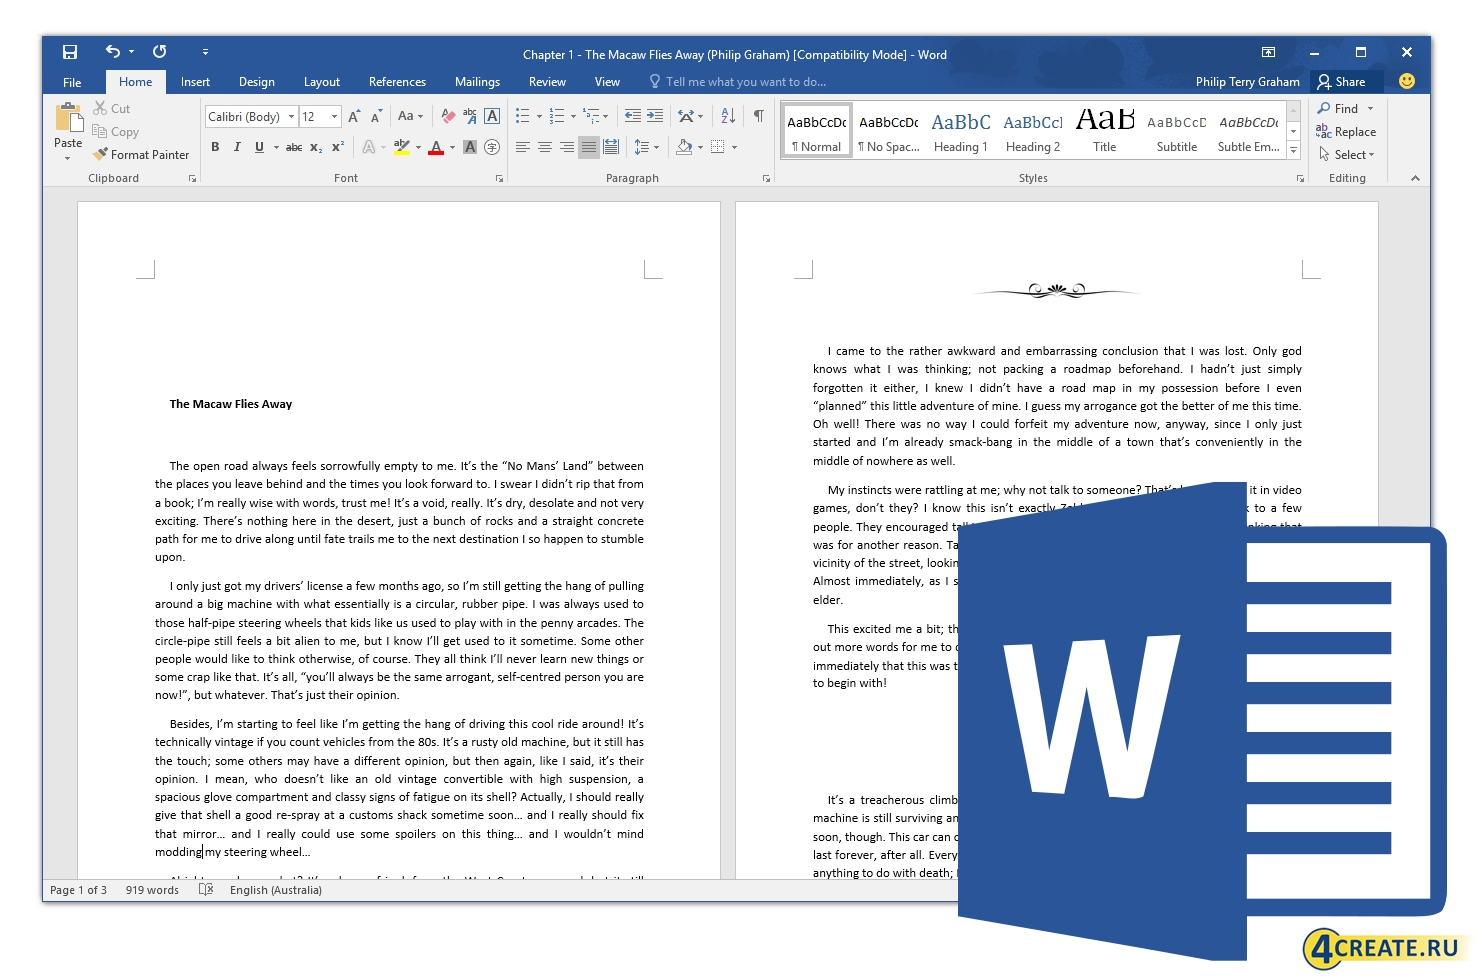 Microsoft Office Pro Plus 2016 v16.0.4266.1003 (Скриншот 1)